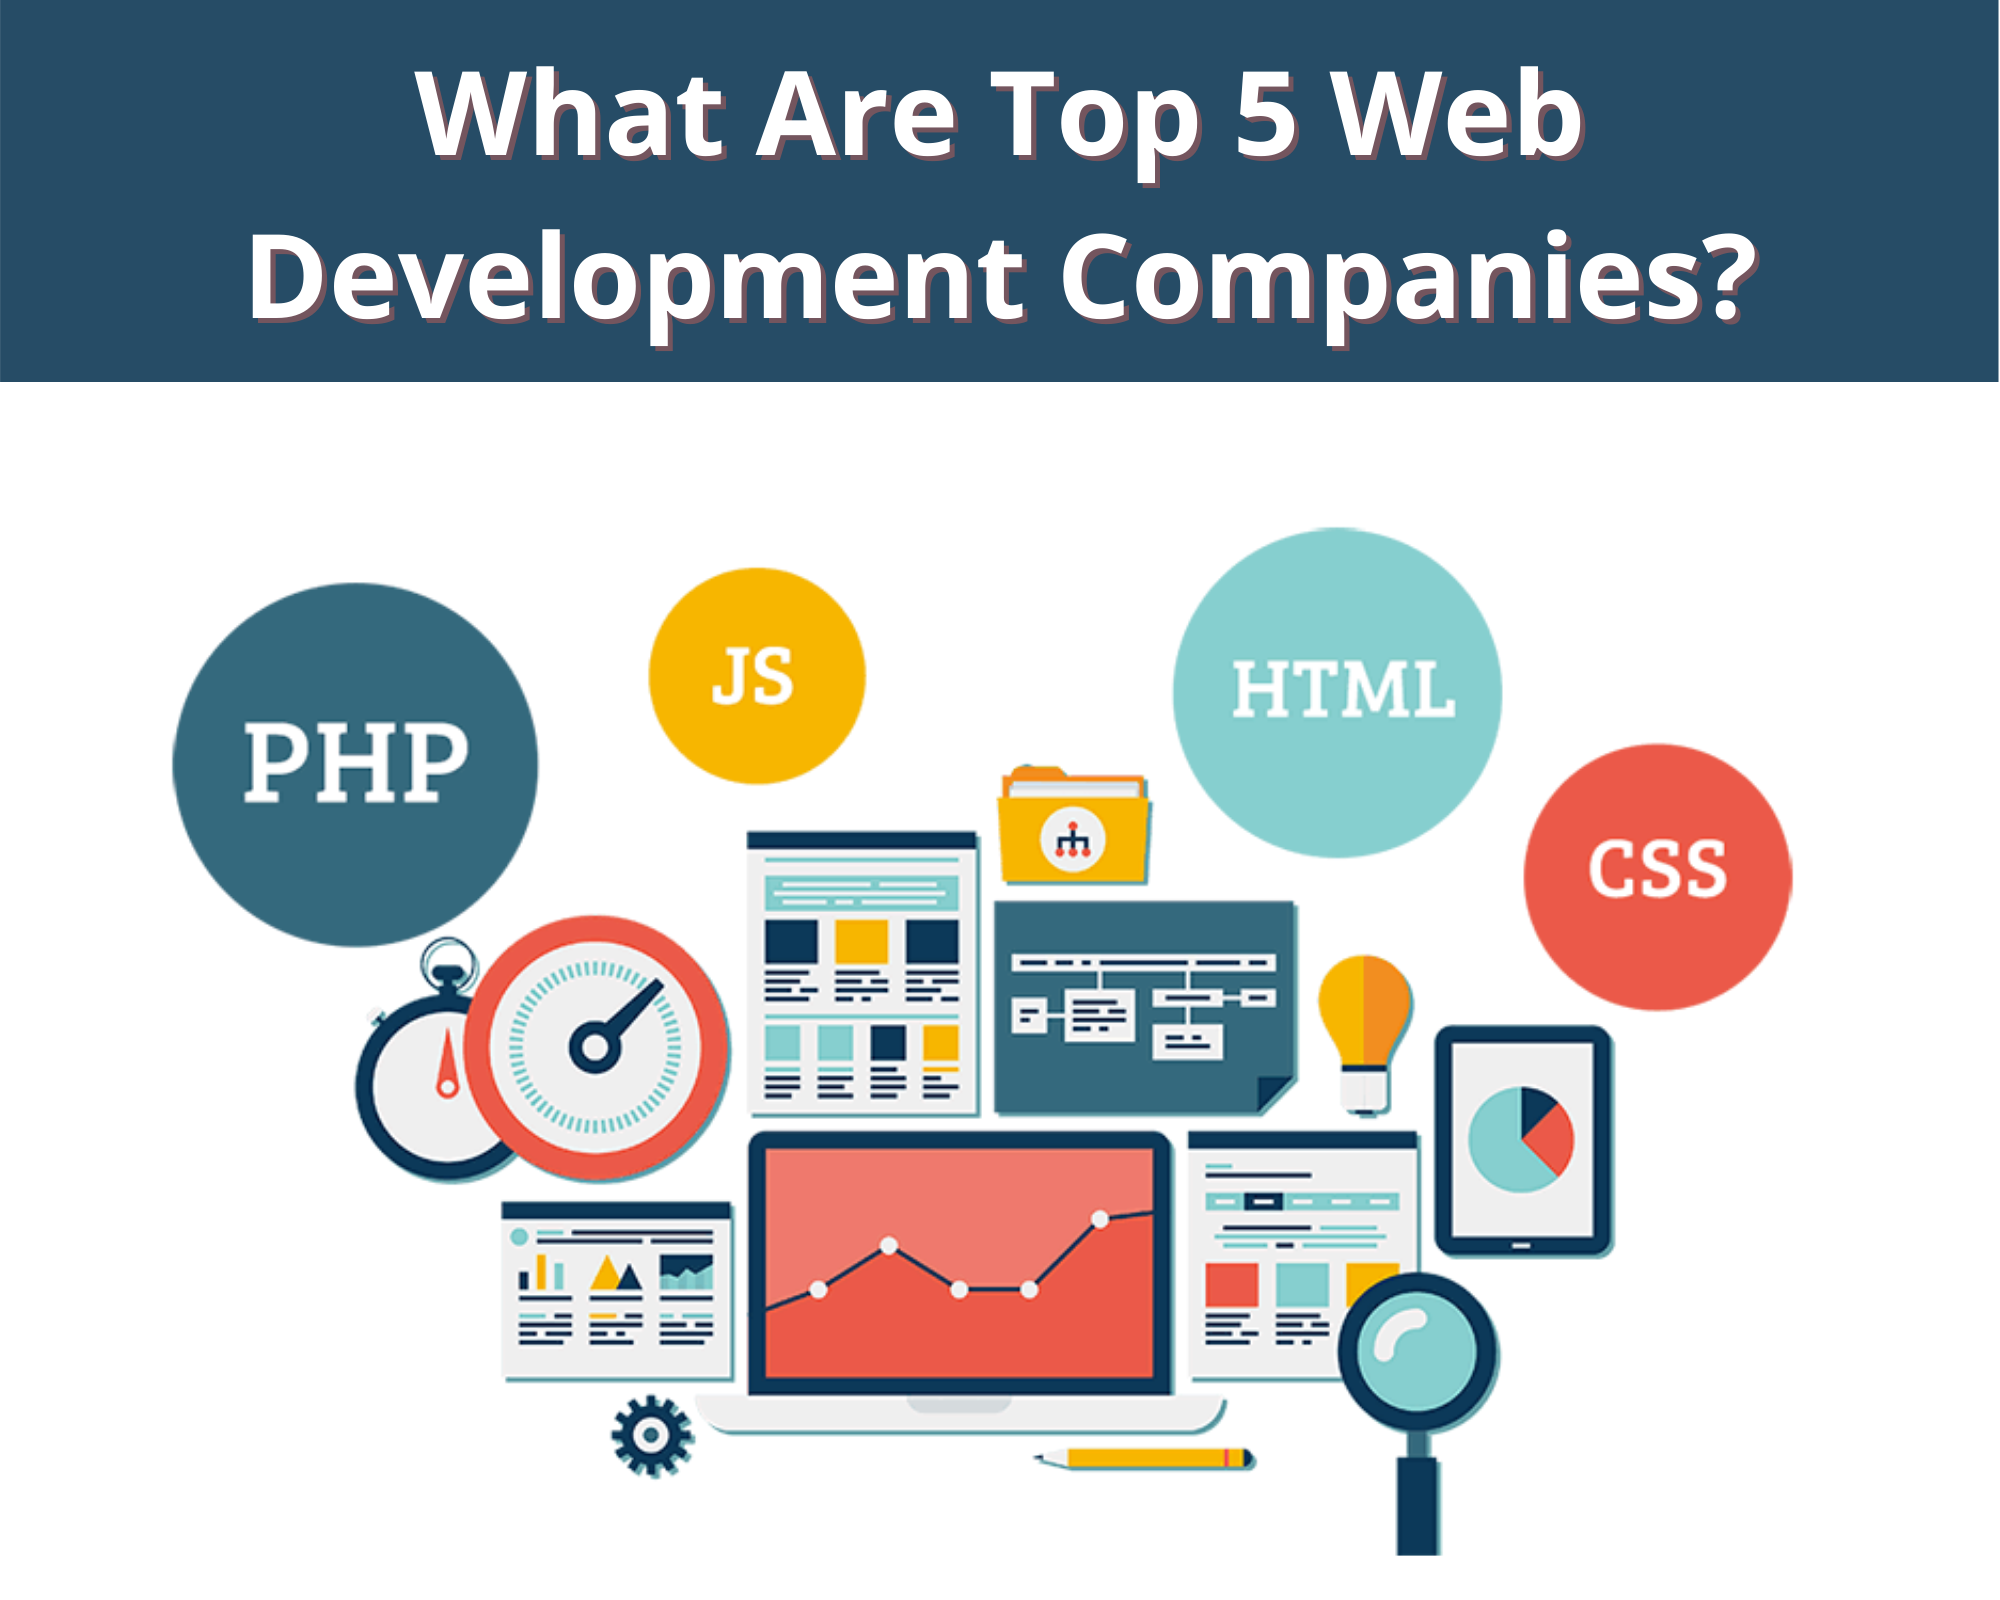 What Are Top 5 Web Development Companies?